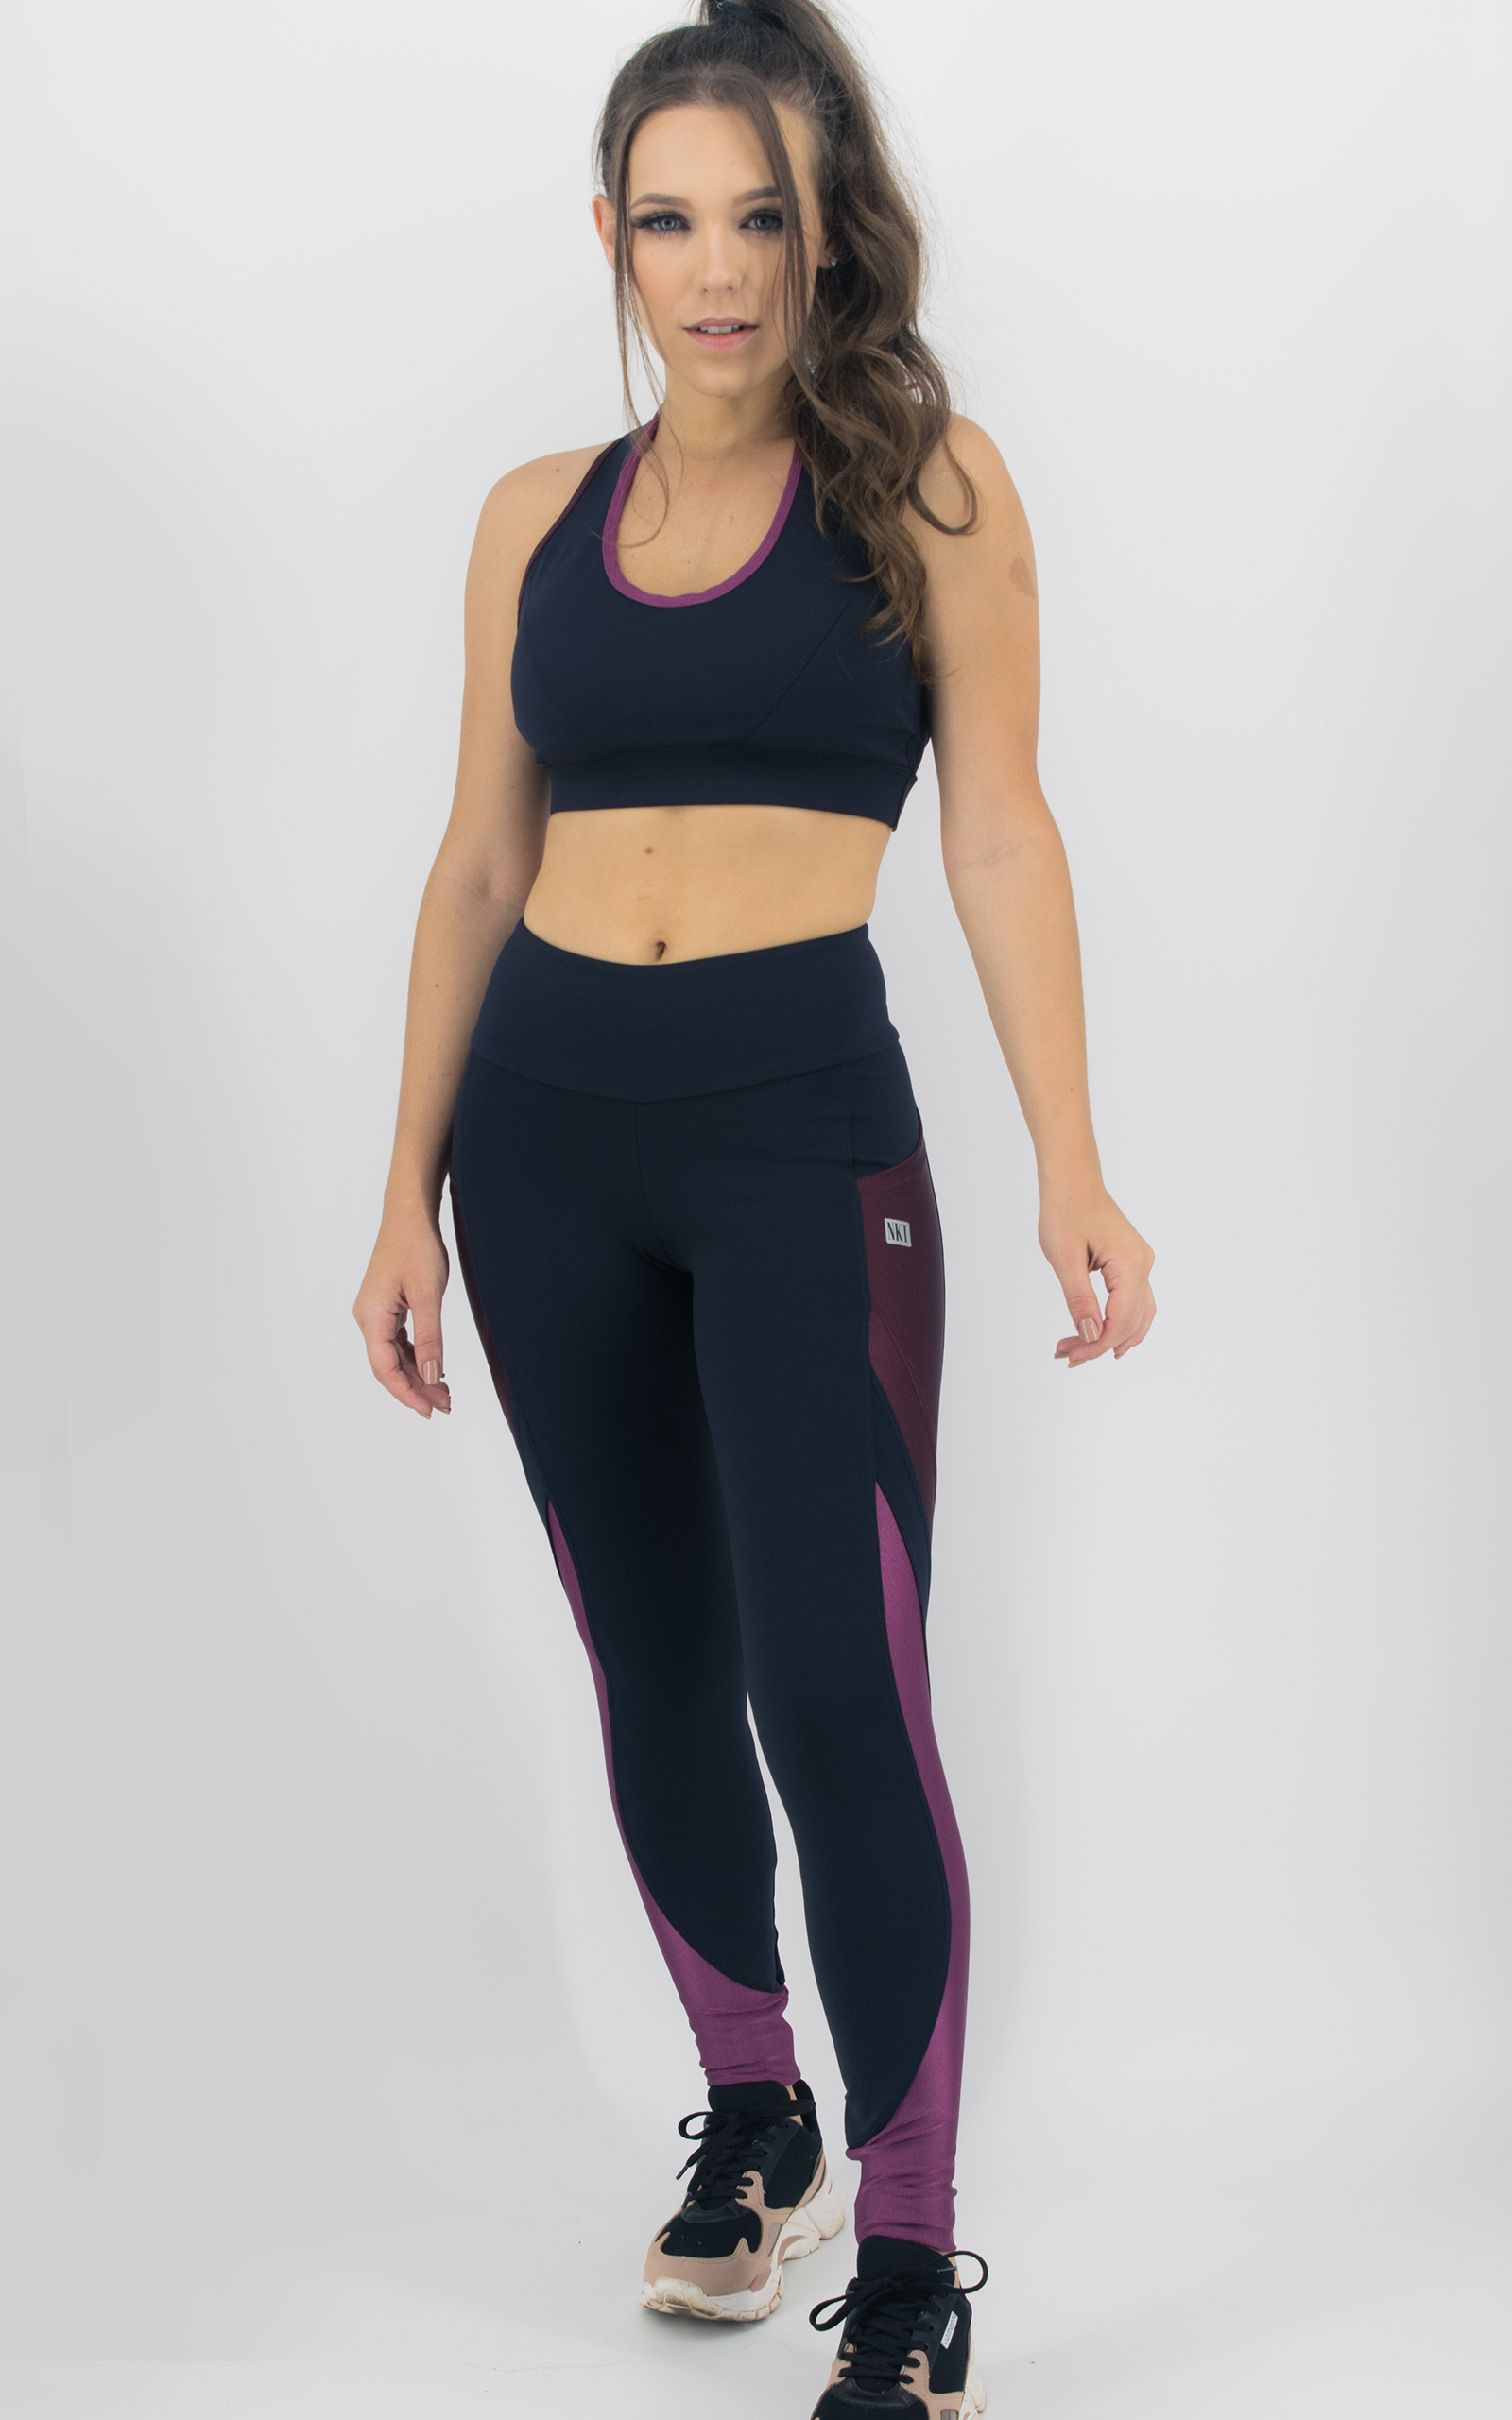 Top Expression Bordo, Coleção Move Your Body - NKT Fitwear Moda Fitness